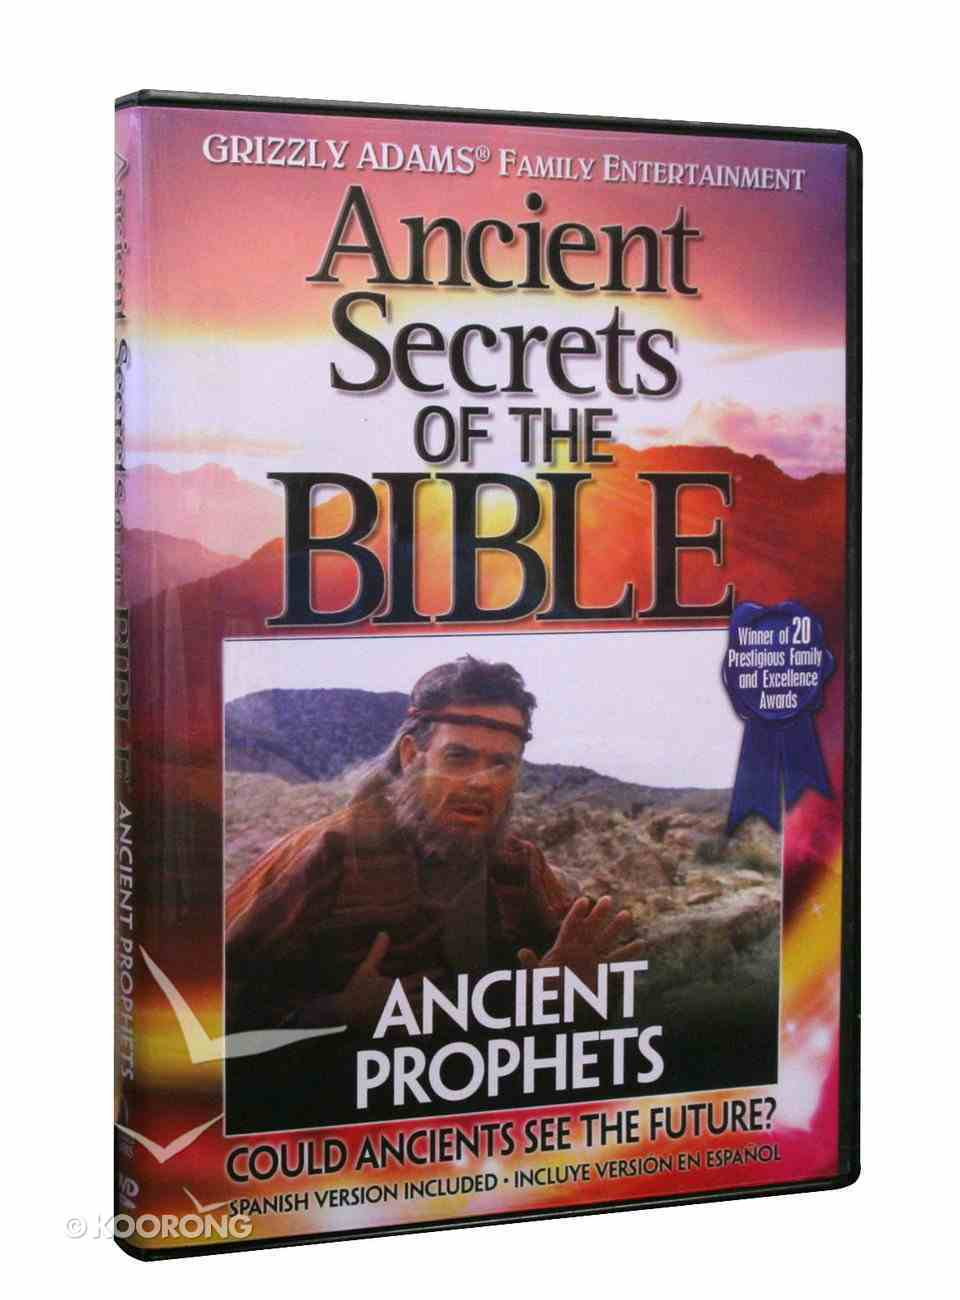 Ancient Secrets 3 #10: Ancient Prophets (#10 in Ancient Secrets Of The Bible Dvd Series) DVD